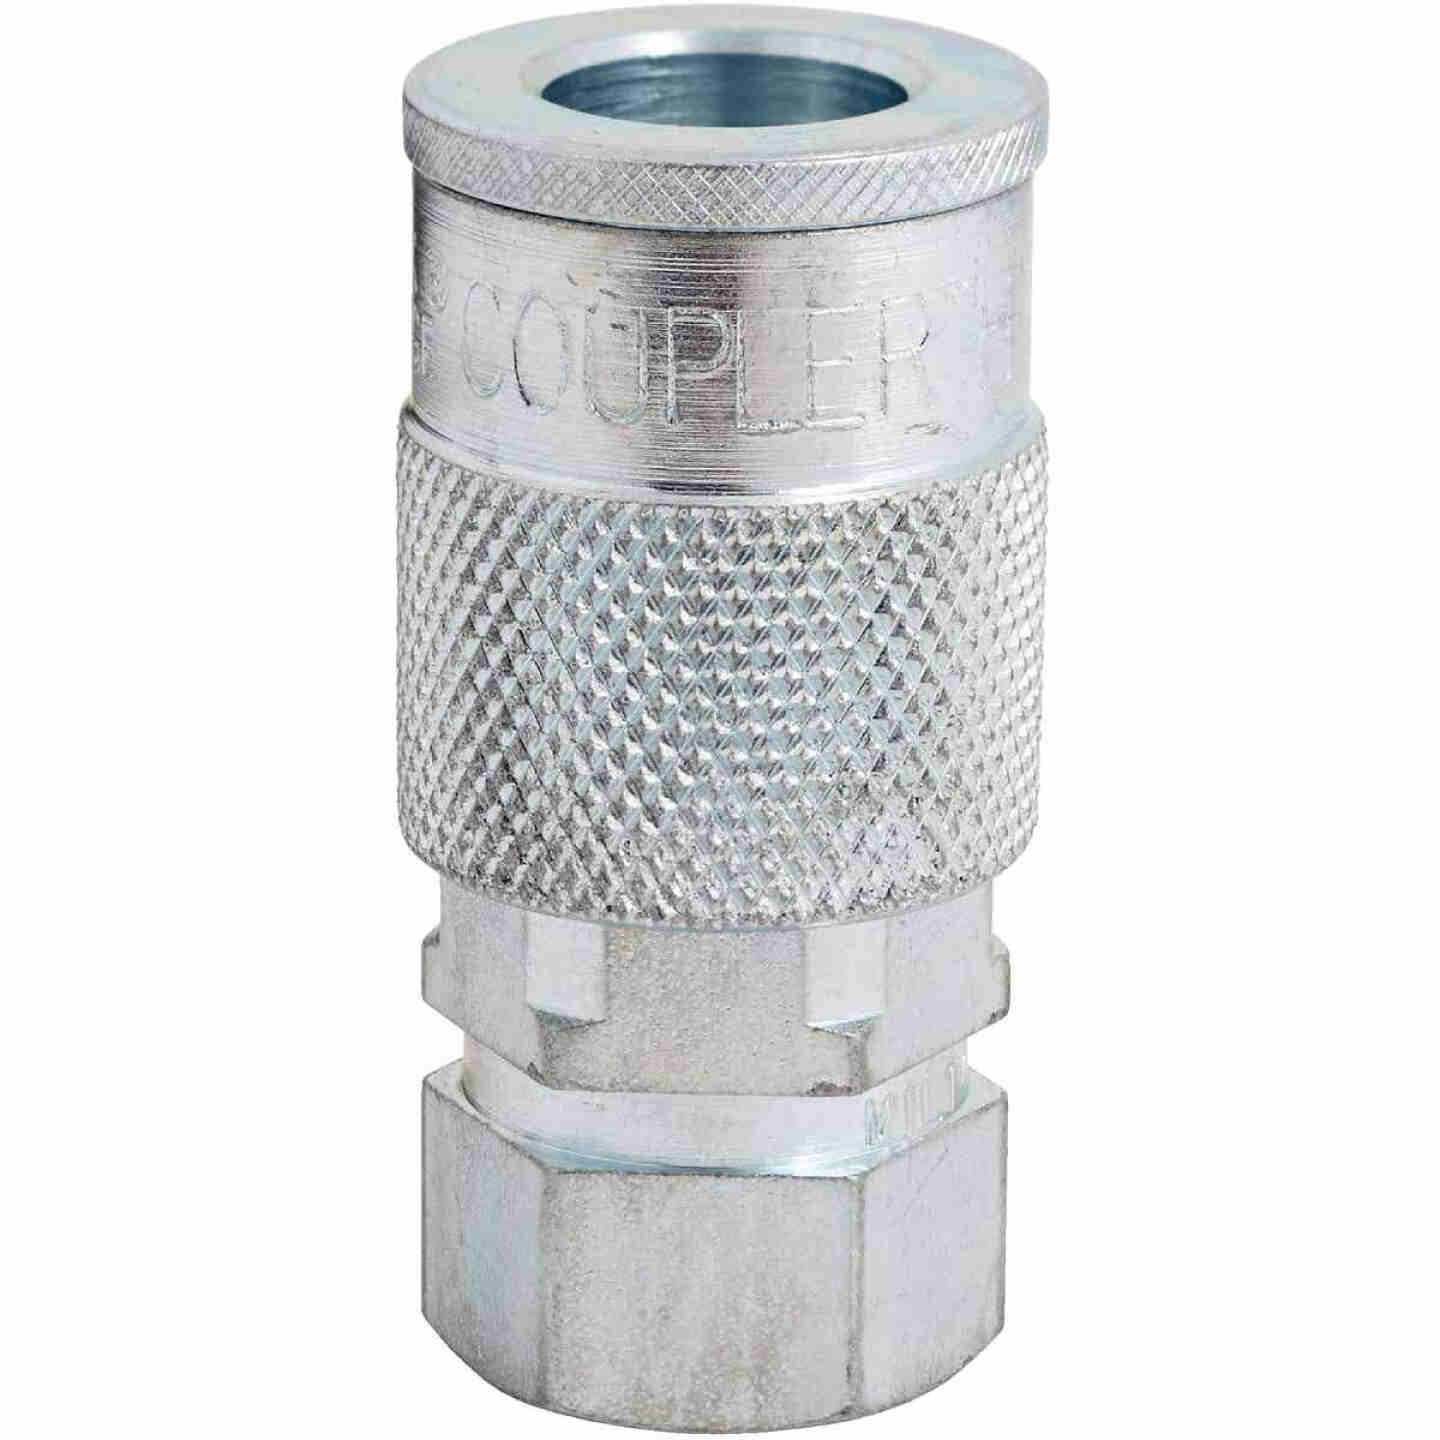 Milton 3/8 In. FPT H-Style Brass Coupler Image 1